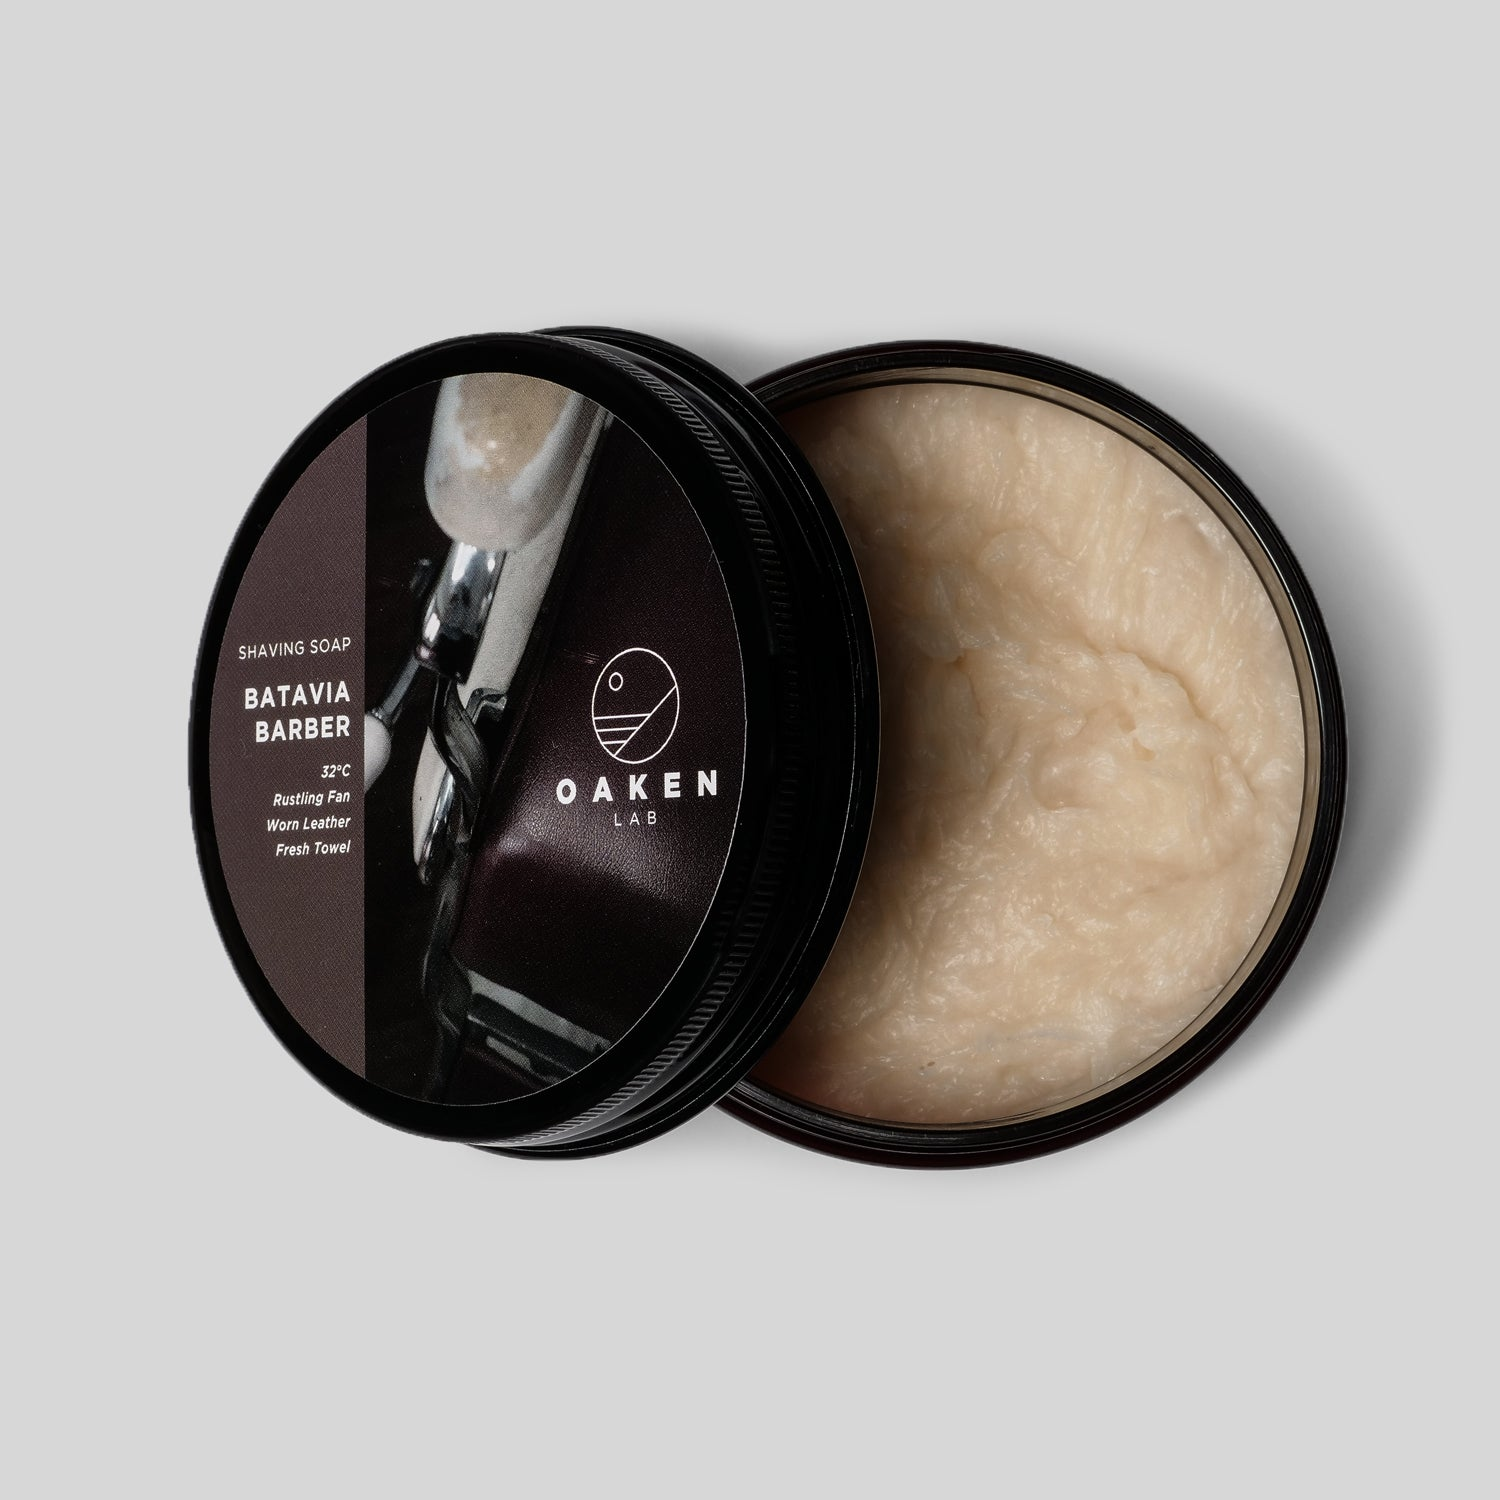 Batavia Barber <br> Shaving Soap